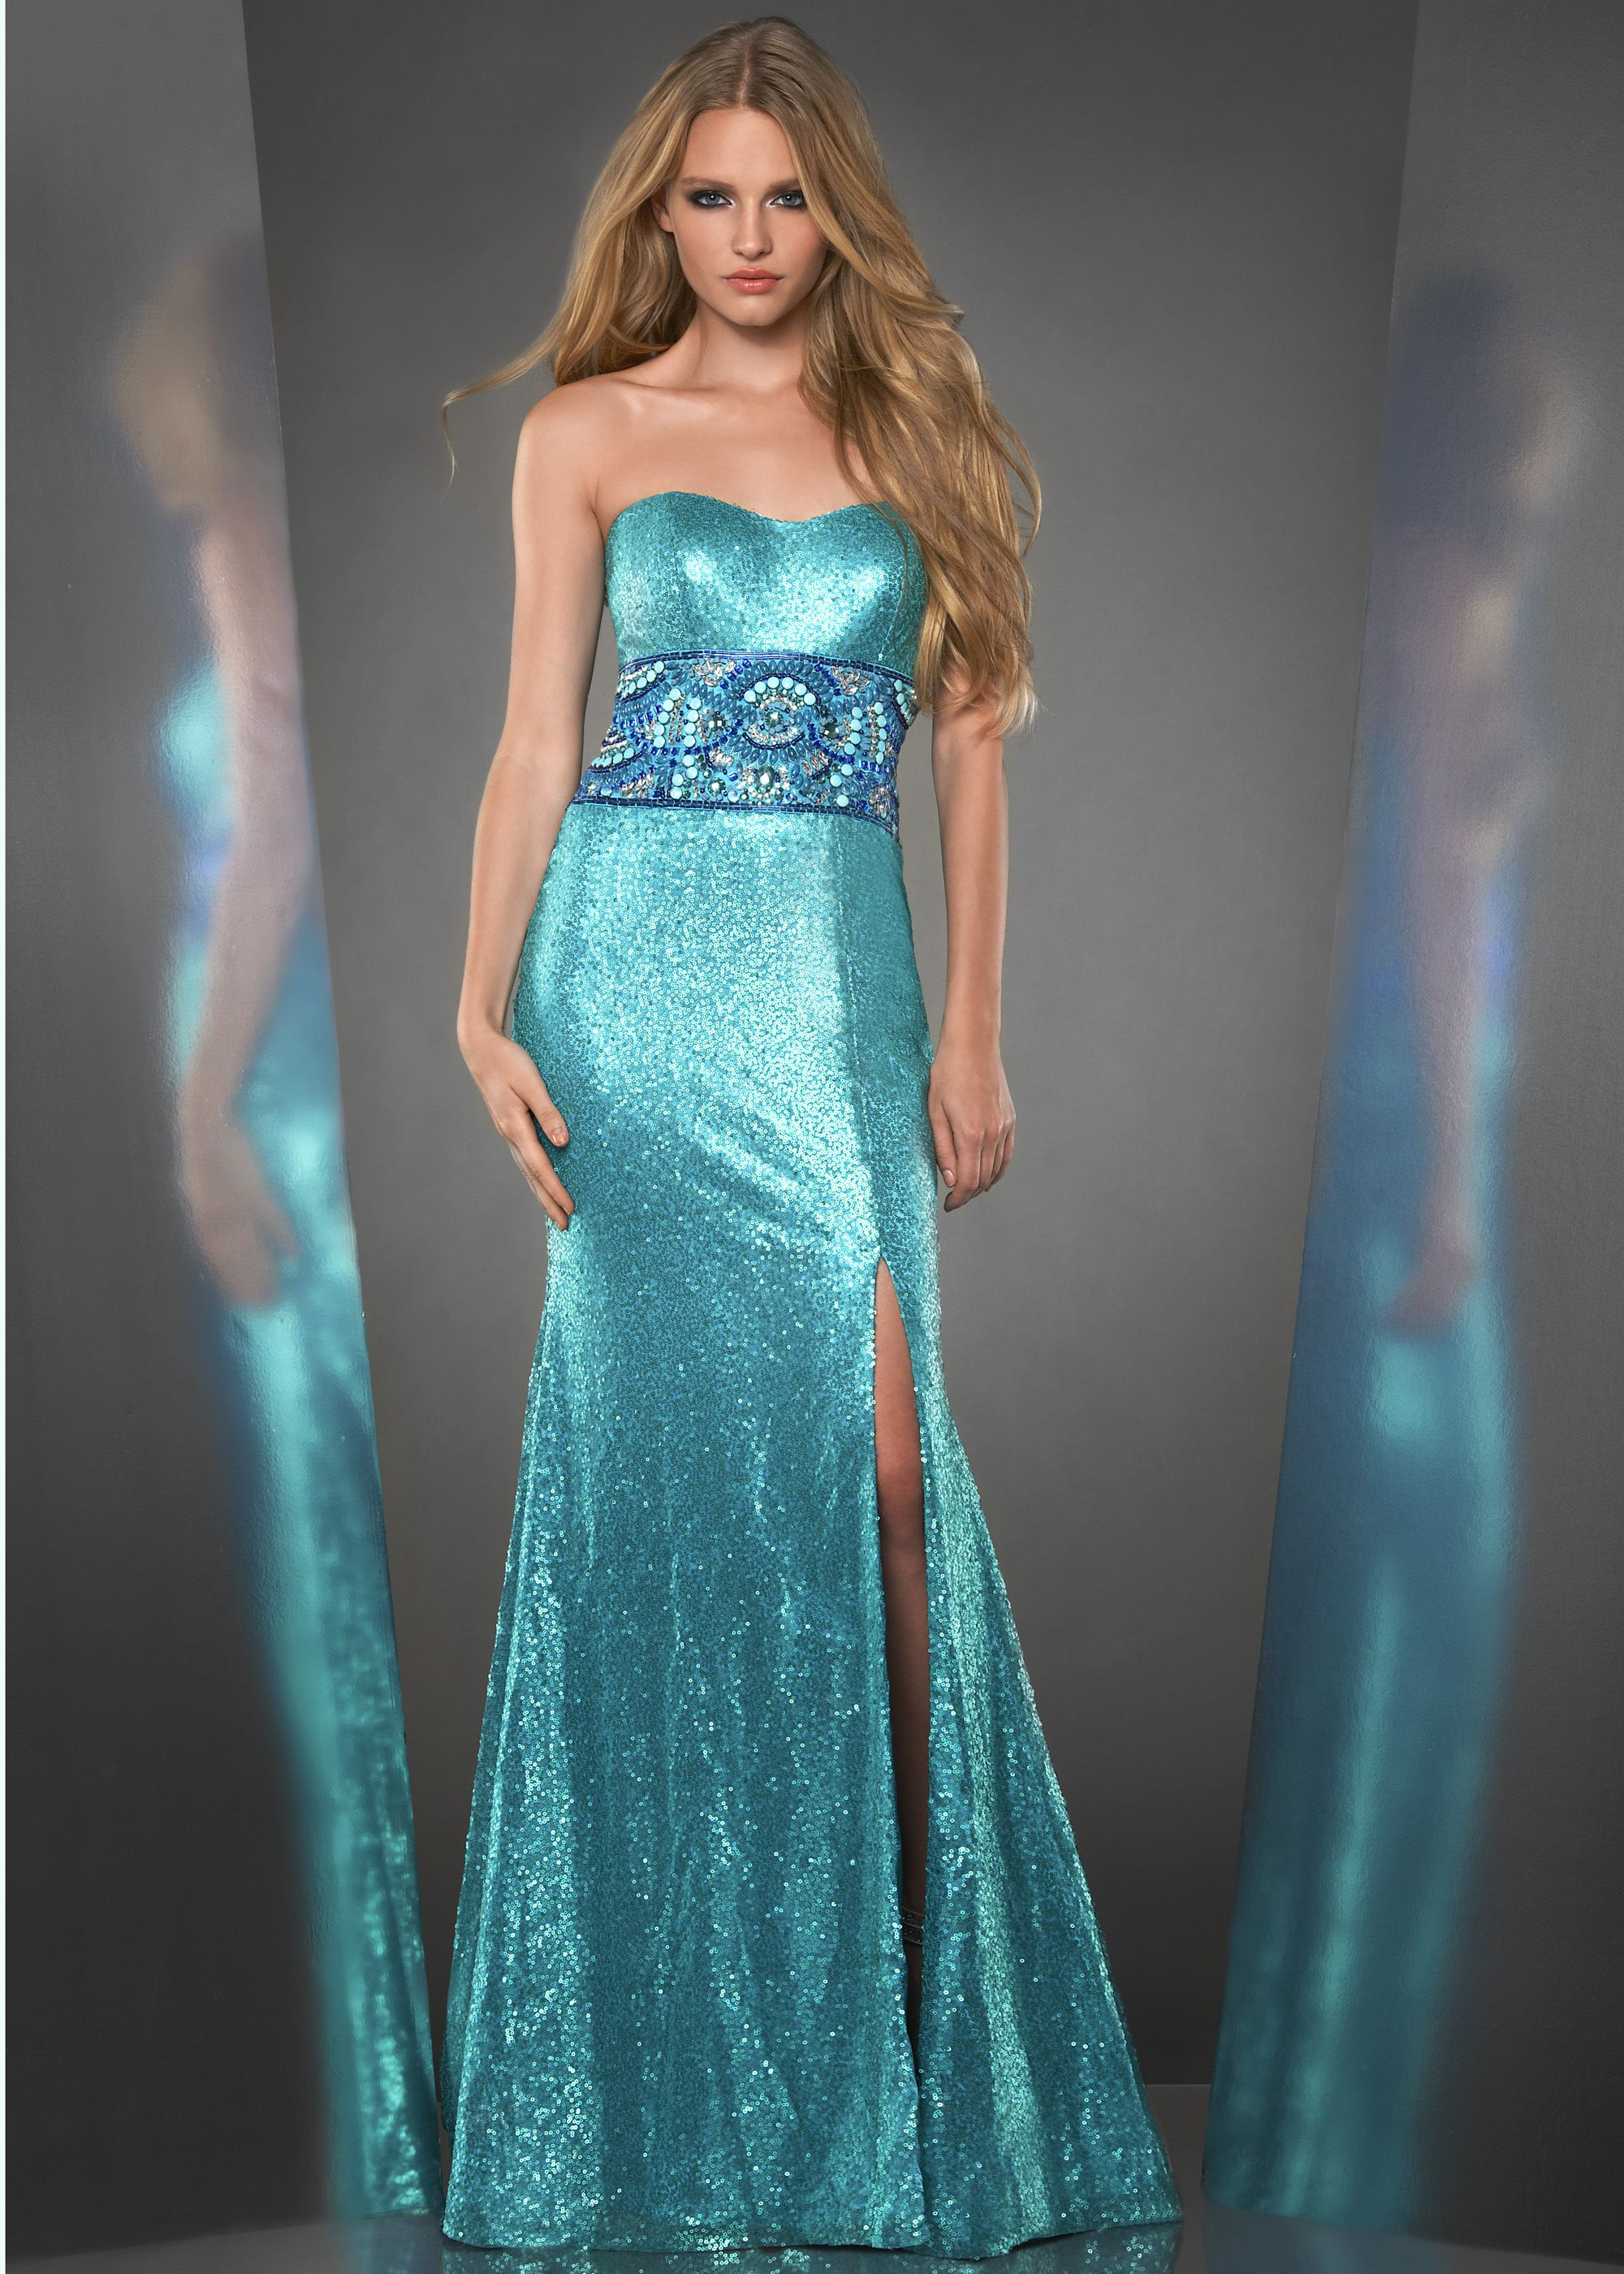 Shimmer by Bari Jay 59805 - Turquoise Sequin Mermaid Prom Dresses ...